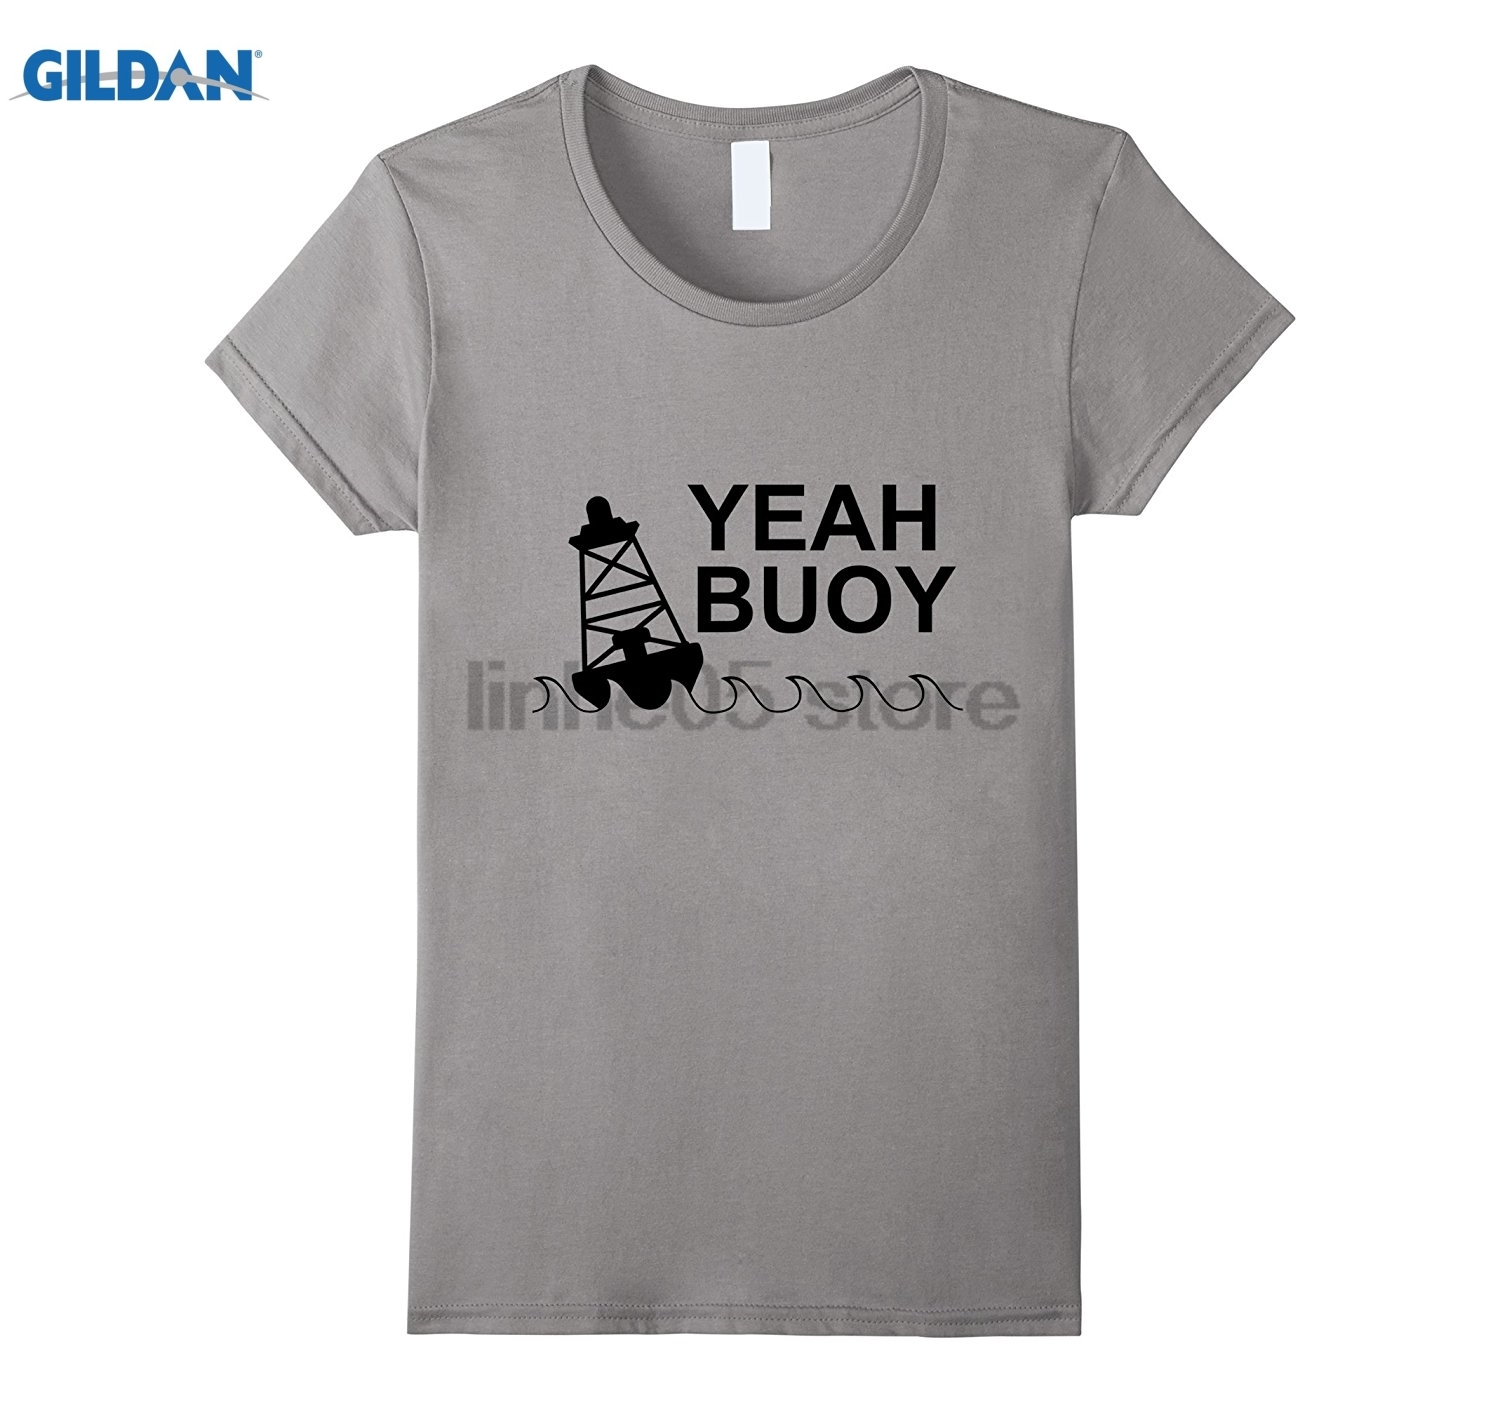 GILDAN Yeah Buoy t-shirt Dress female T-shirt ...